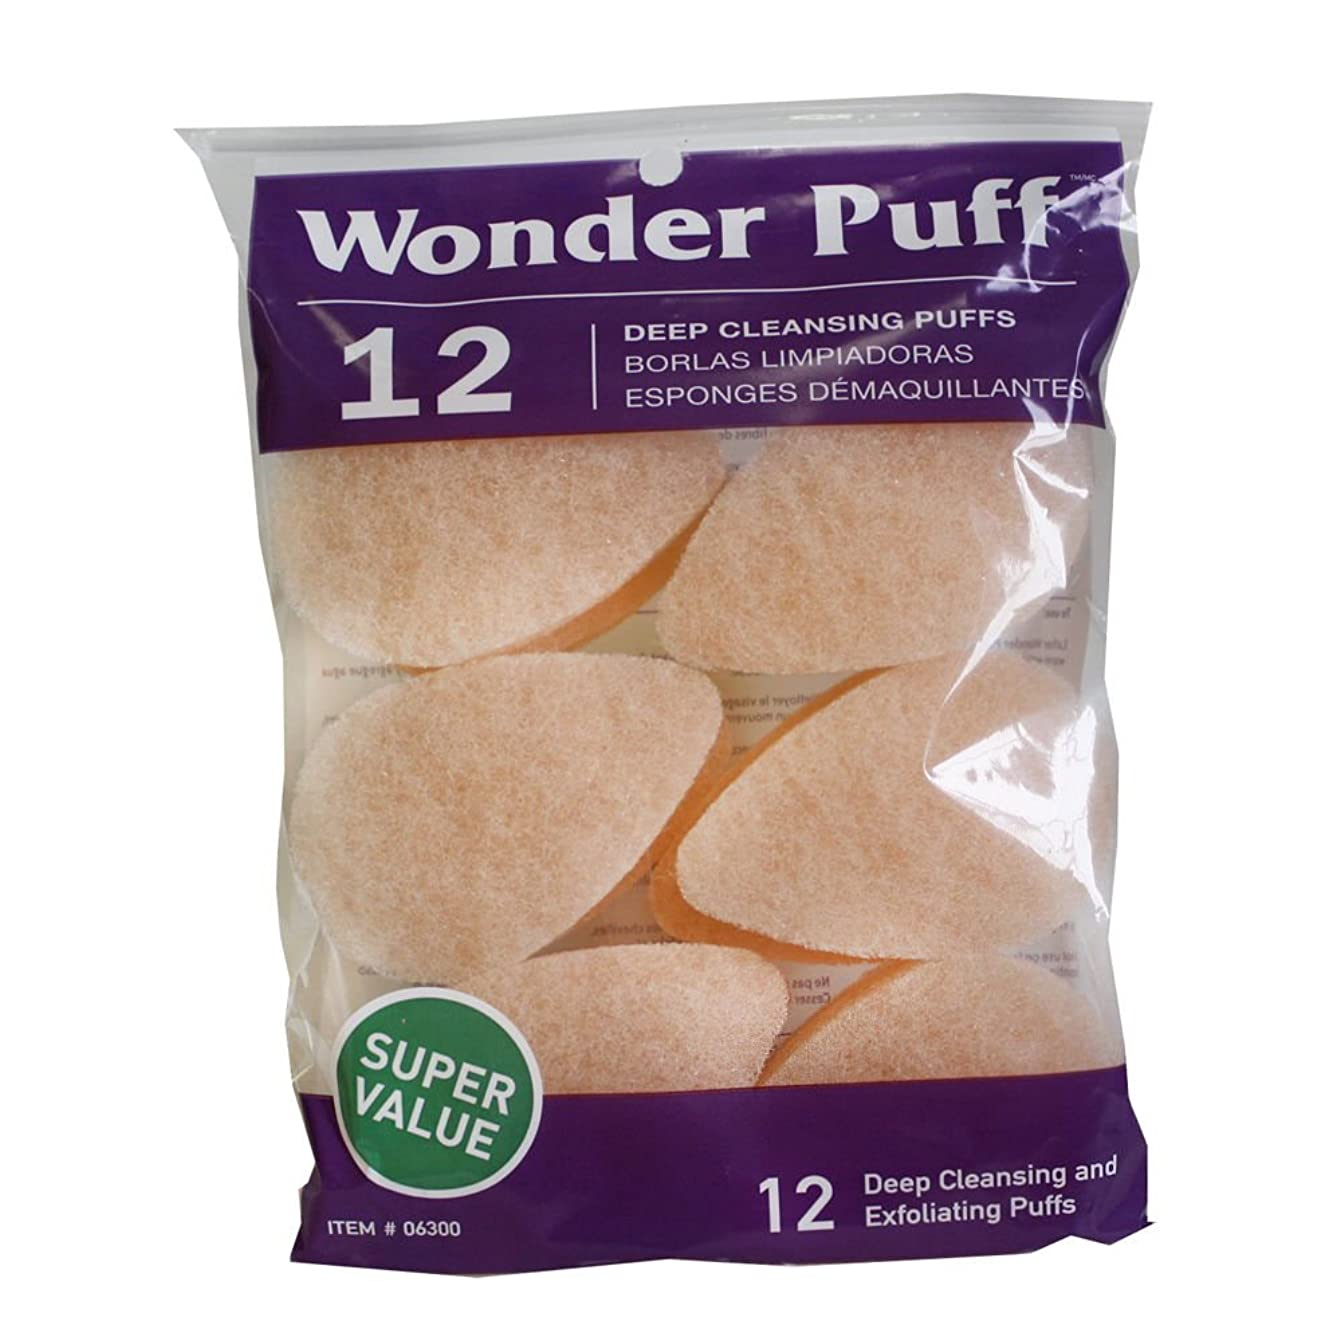 妖精暗黙拍車Wonder Puff Deep Cleansing Puffs 12's (並行輸入品)